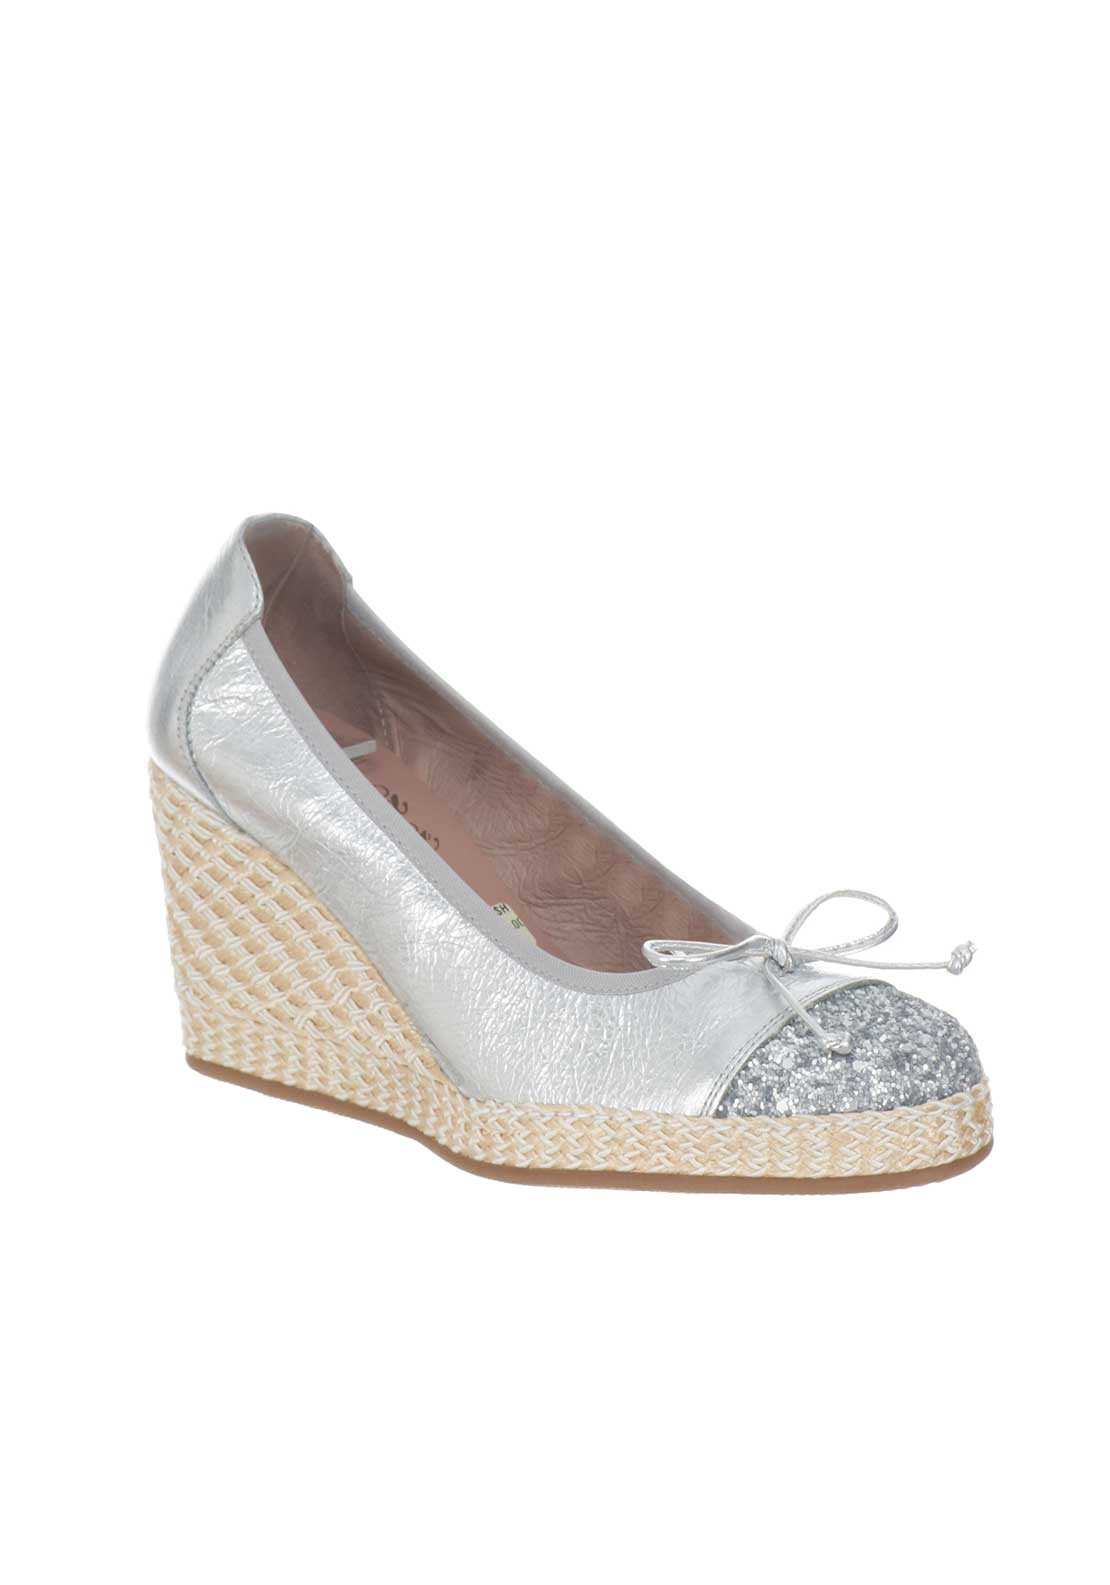 Wonders Leather Metallic Wedged Shoes, Silver